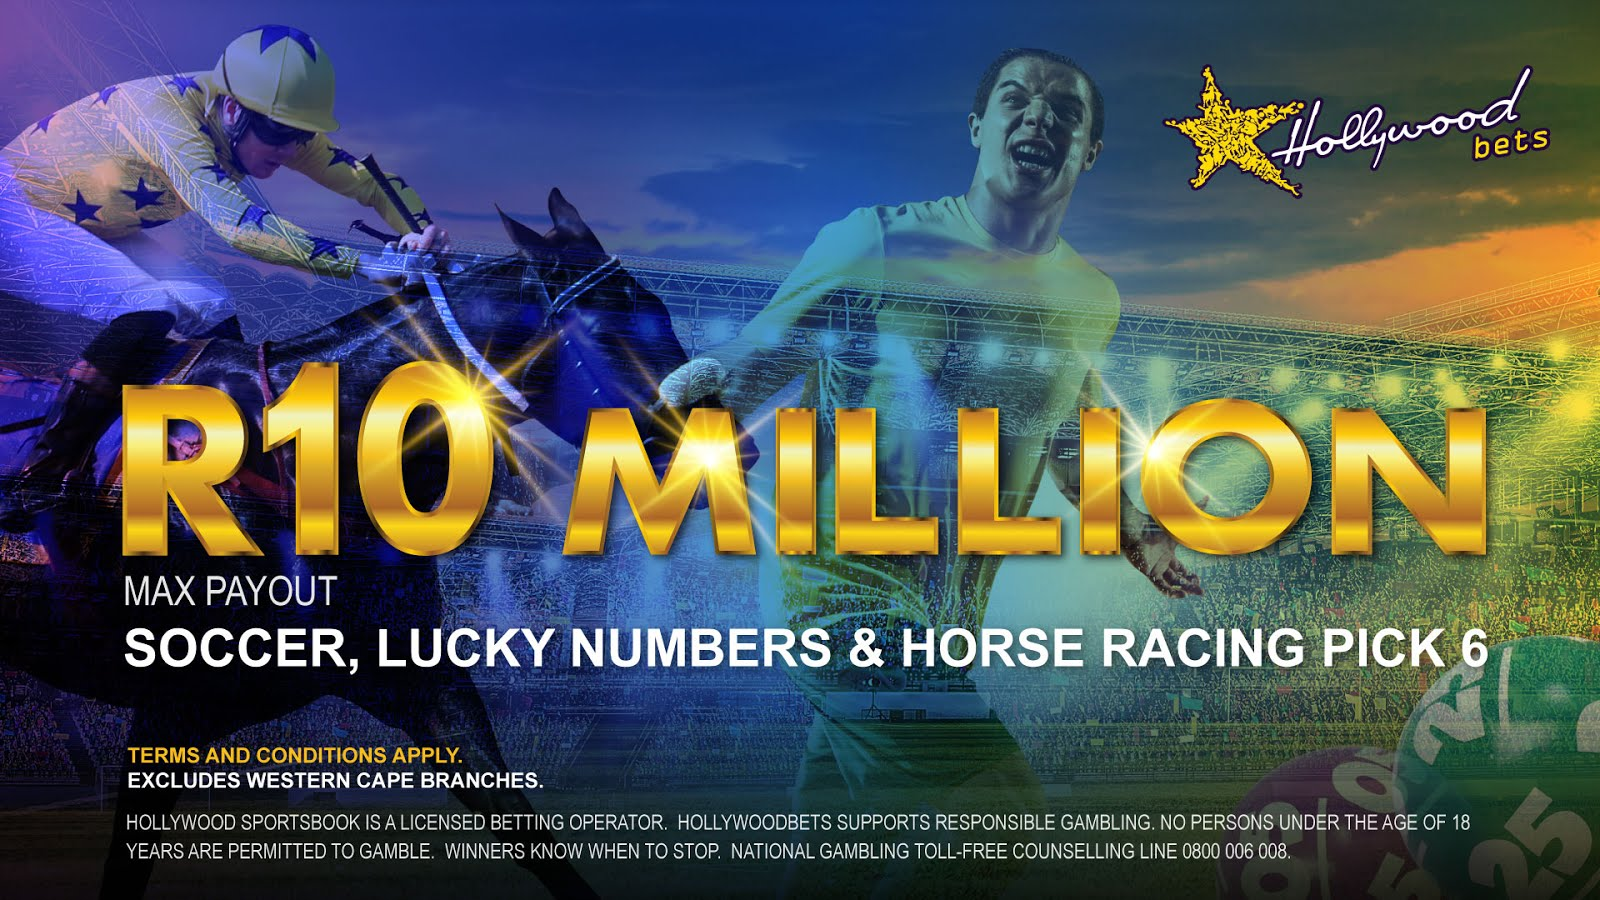 R10 Million Max Payout at Hollywoodbets - Soccer, Lucky Numbers and Horse Racing Pick 6